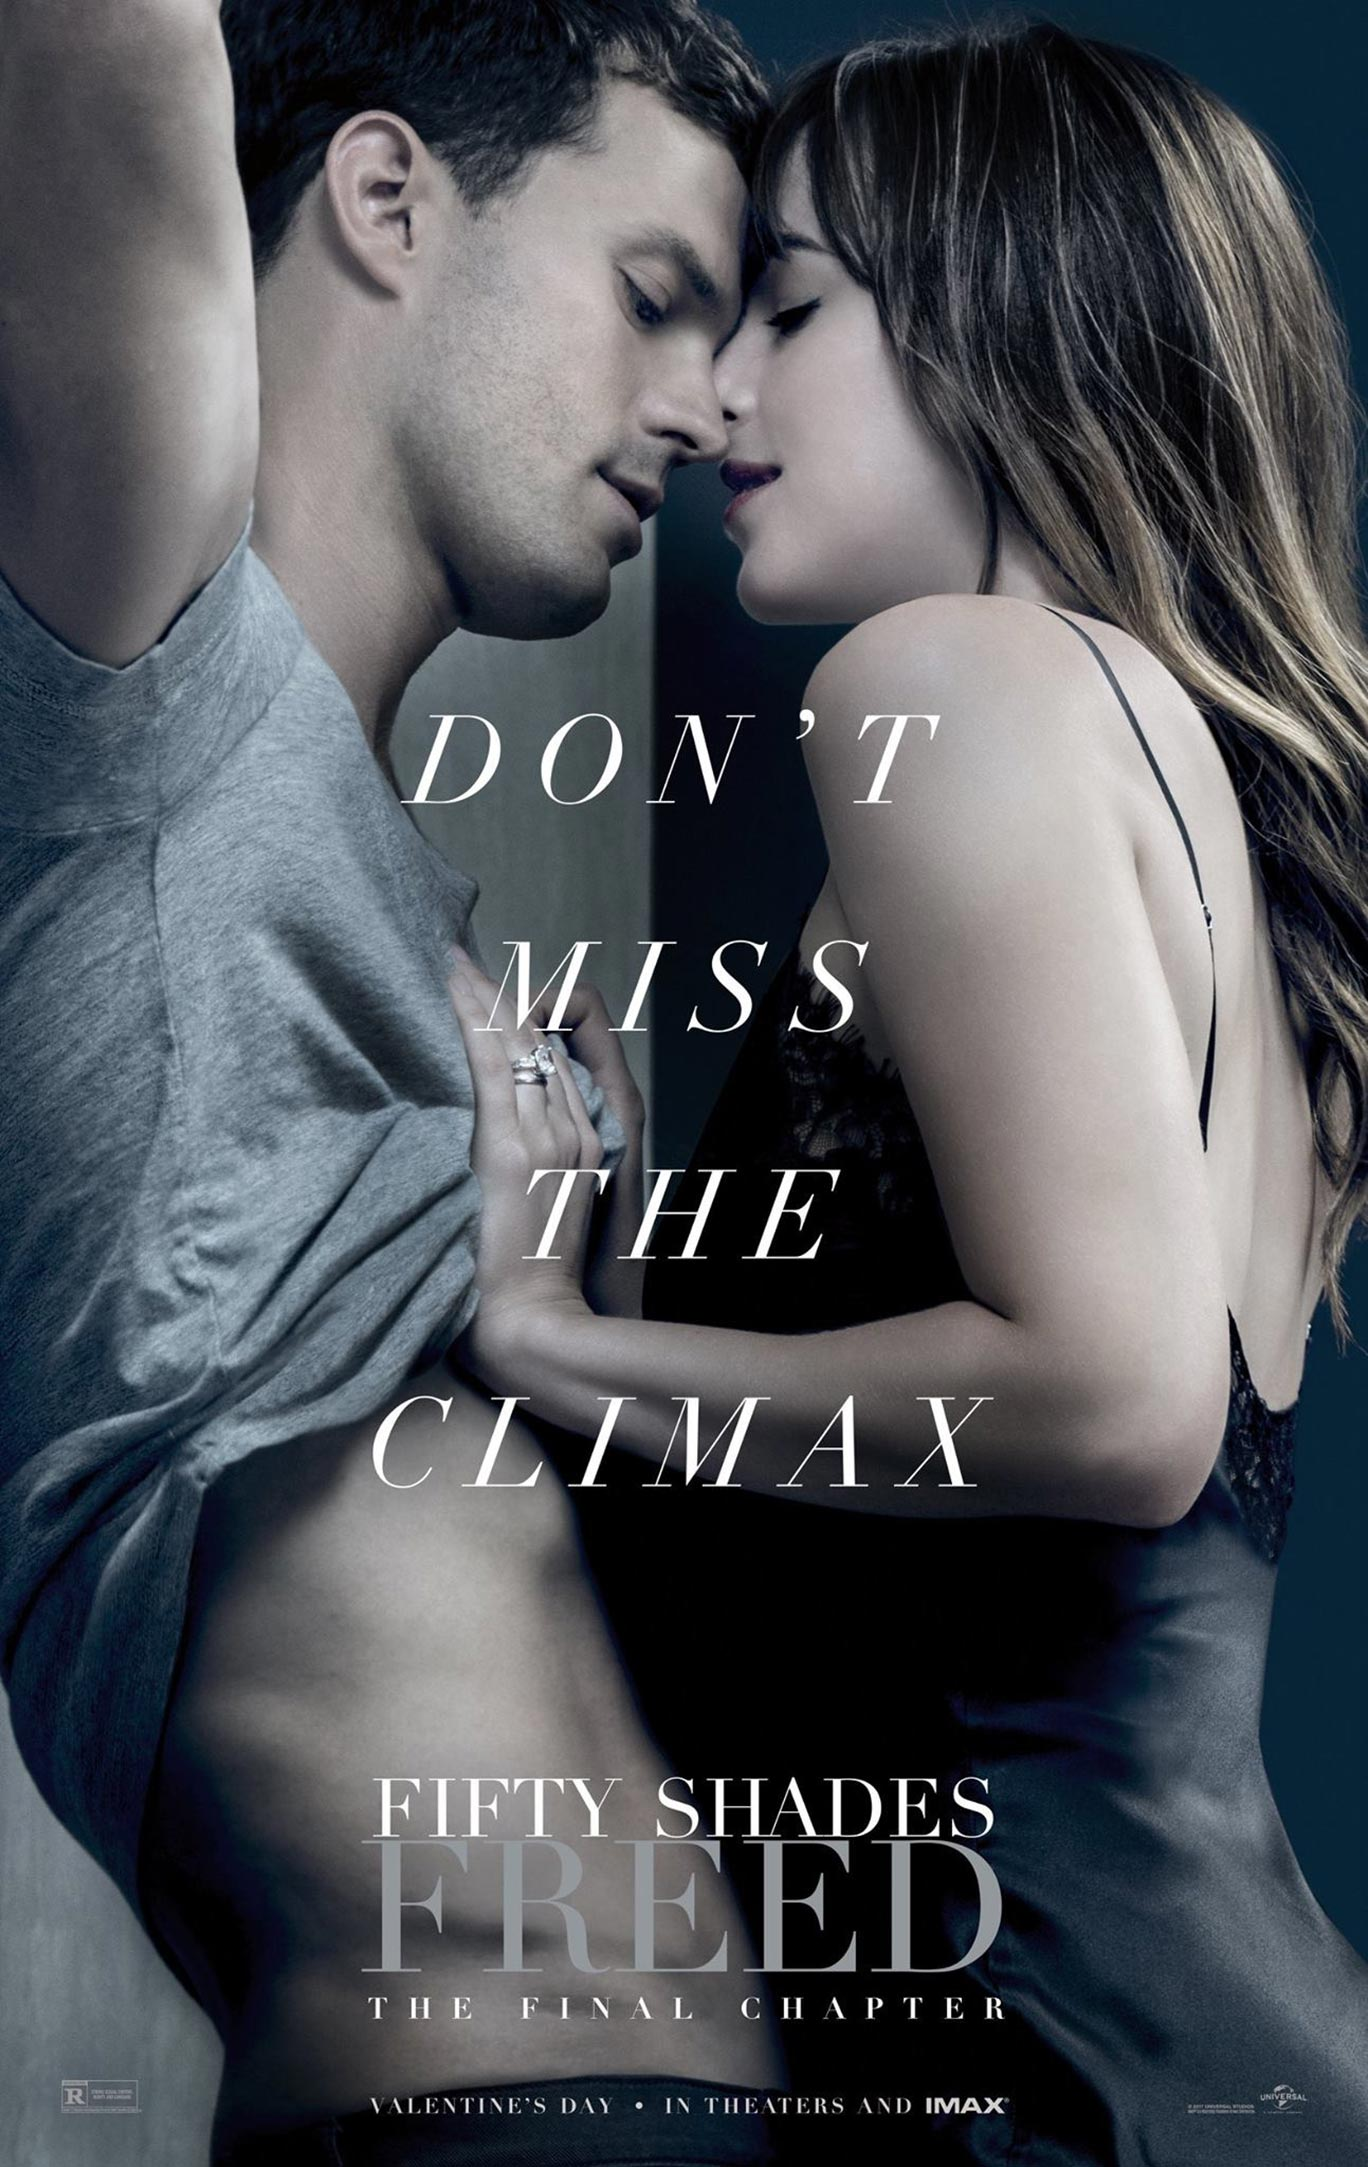 Fifty Shades Freed Poster #2